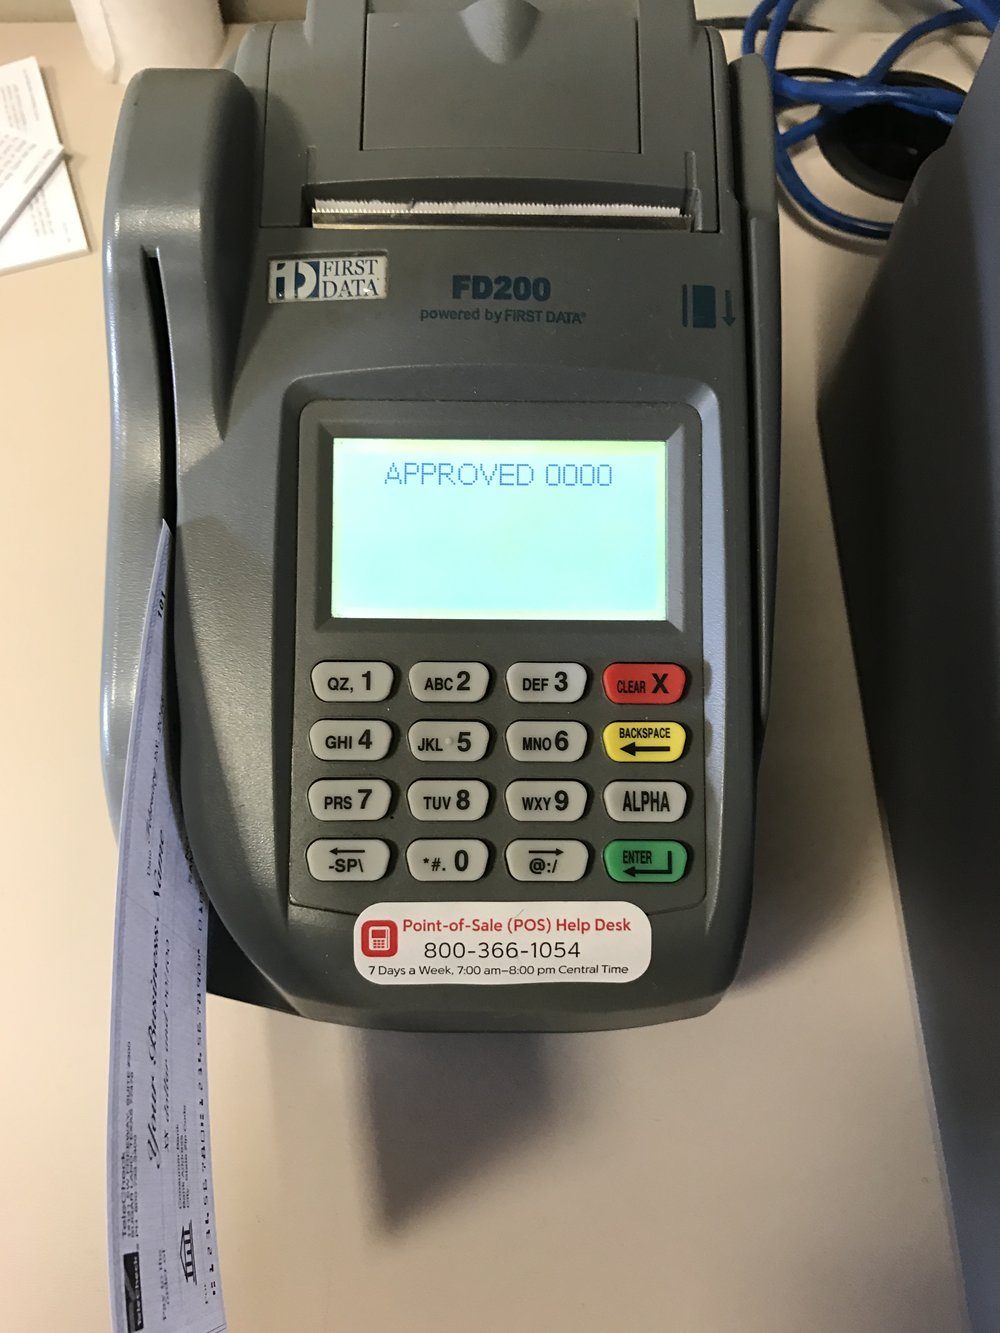 9. After a few seconds you will receive an Approved message and a receipt will print. Tear off the receipt and have the check writer sign it.